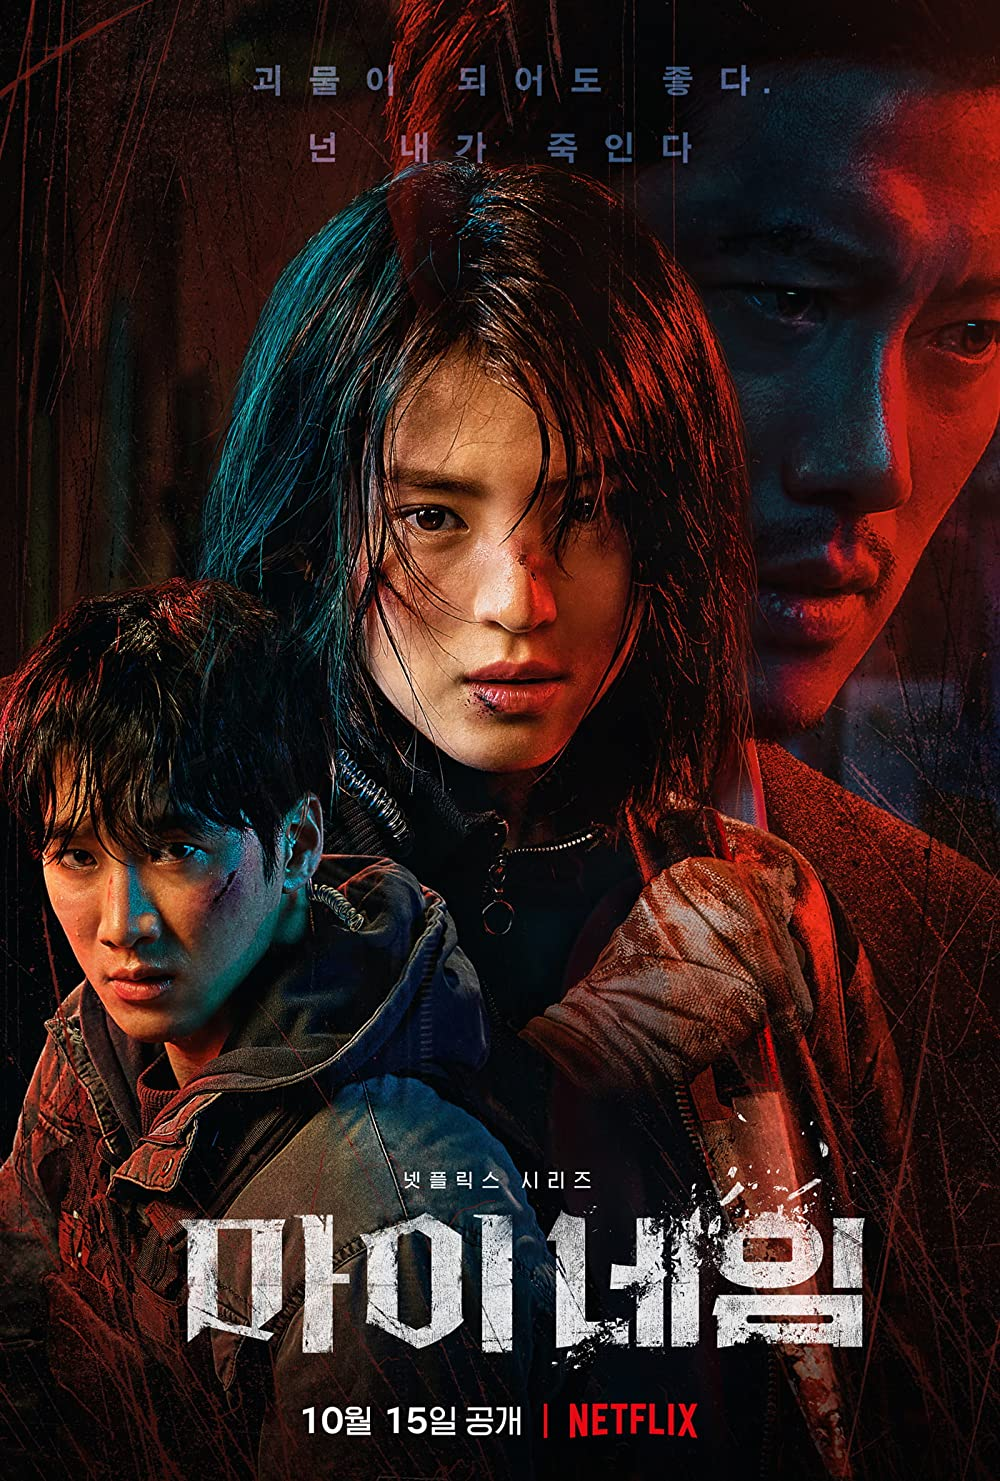 My Name (2021) S01 720p HDRip Hindi Dubbed Complete NF Series [2.7GB]